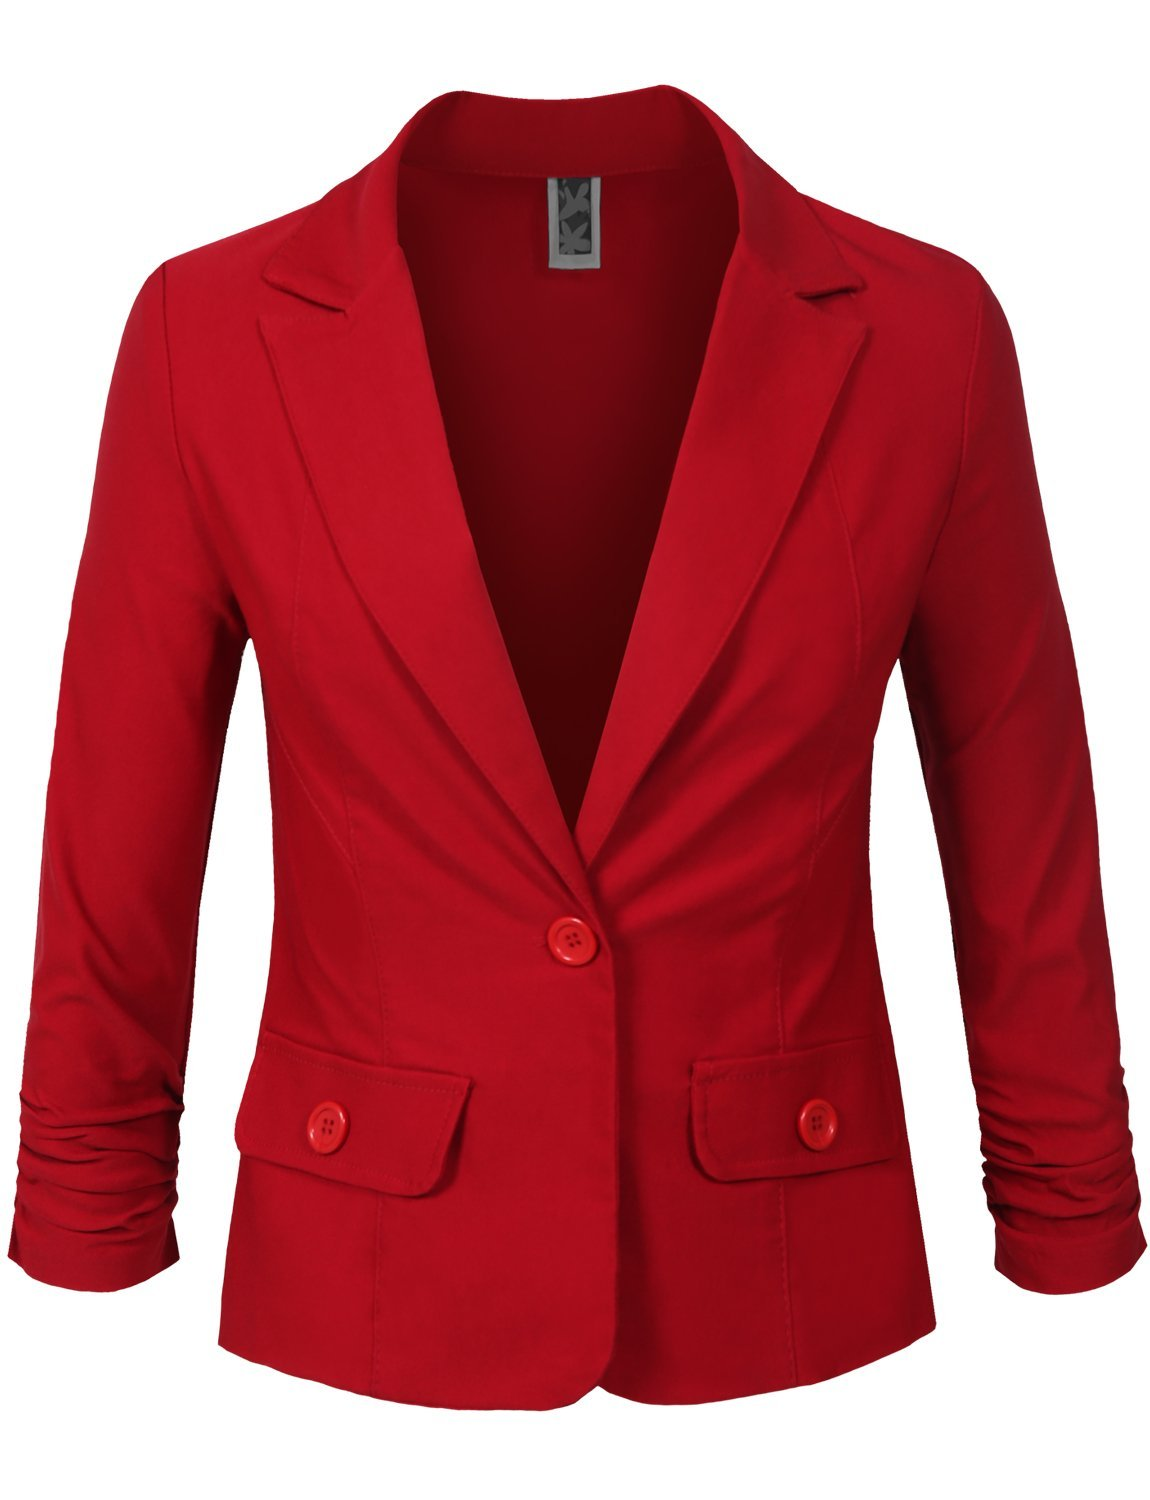 NE PEOPLE Womens 3/4 Scrunched Sleeve One Button Blazer Office Jacket -Red-M